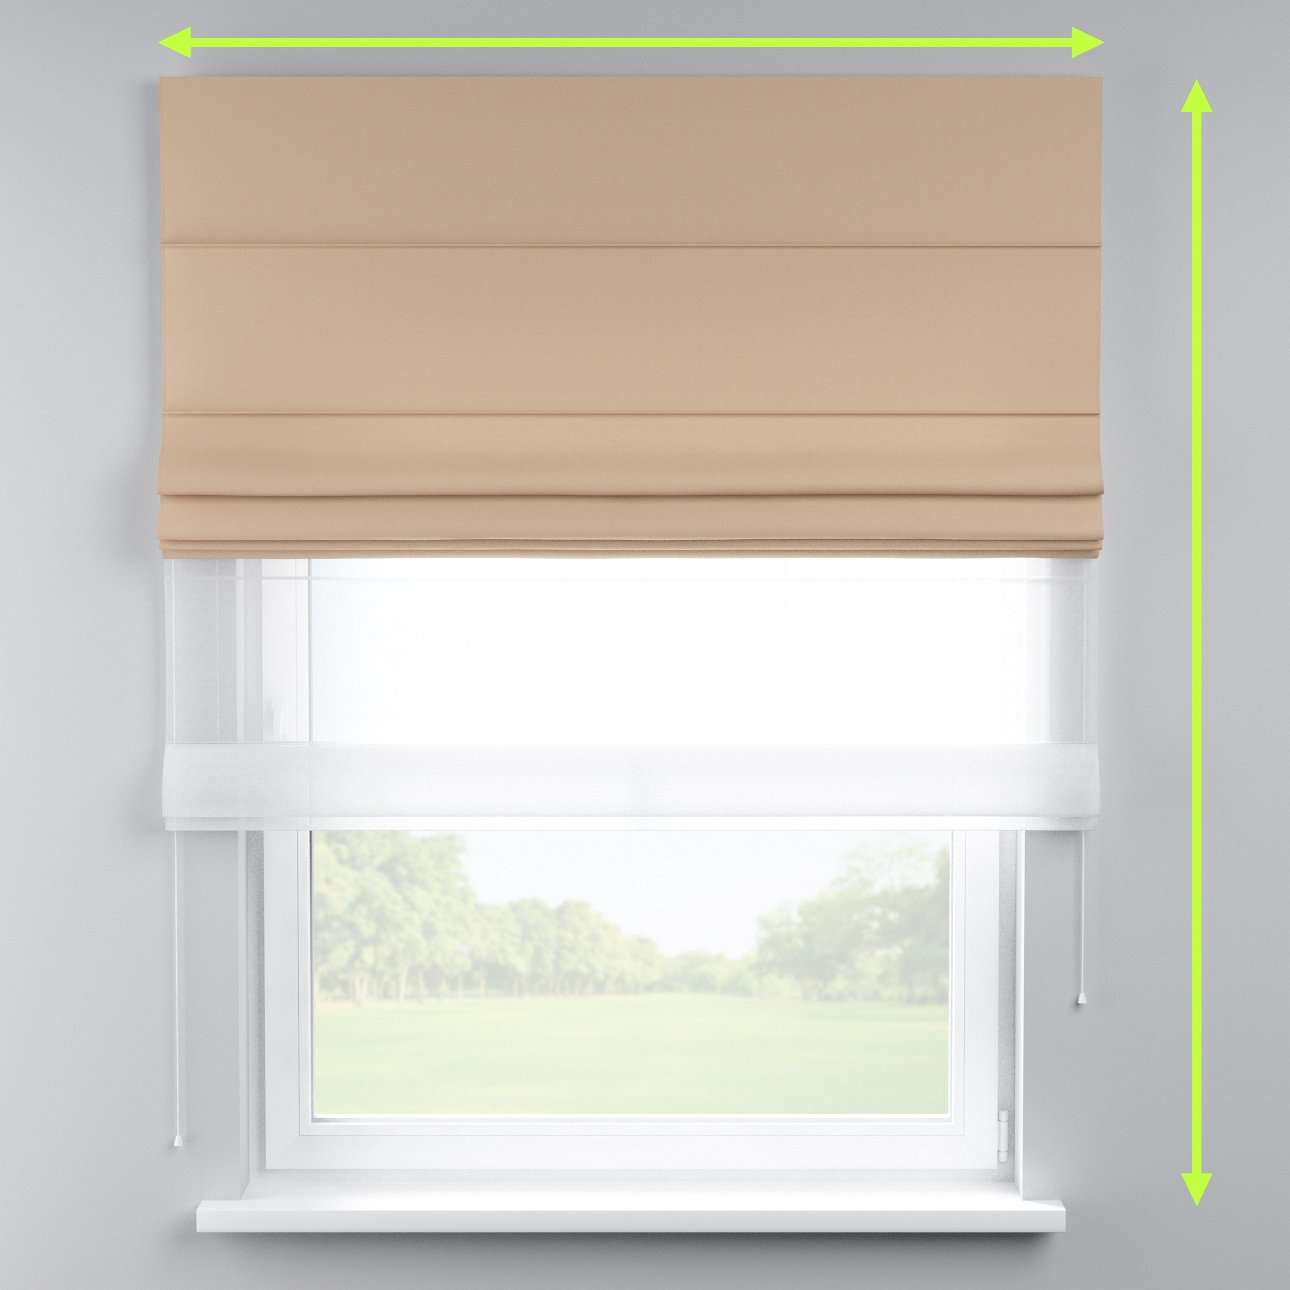 Voile and fabric roman blind (DUO II) in collection Cotton Panama, fabric: 702-01